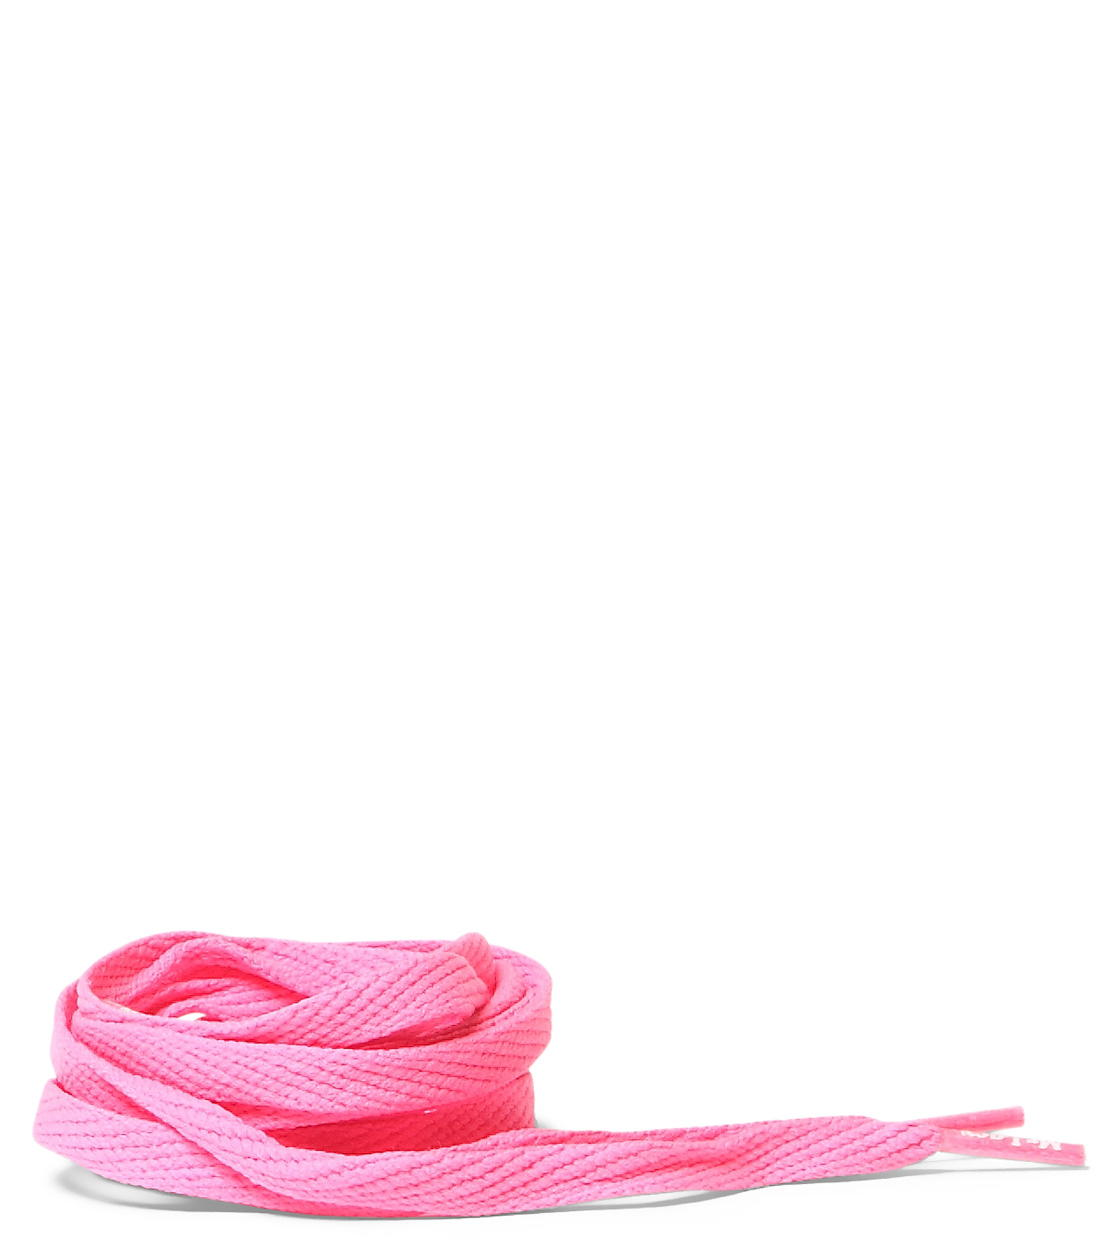 Mr. Lacy Laces Smallies pink neon